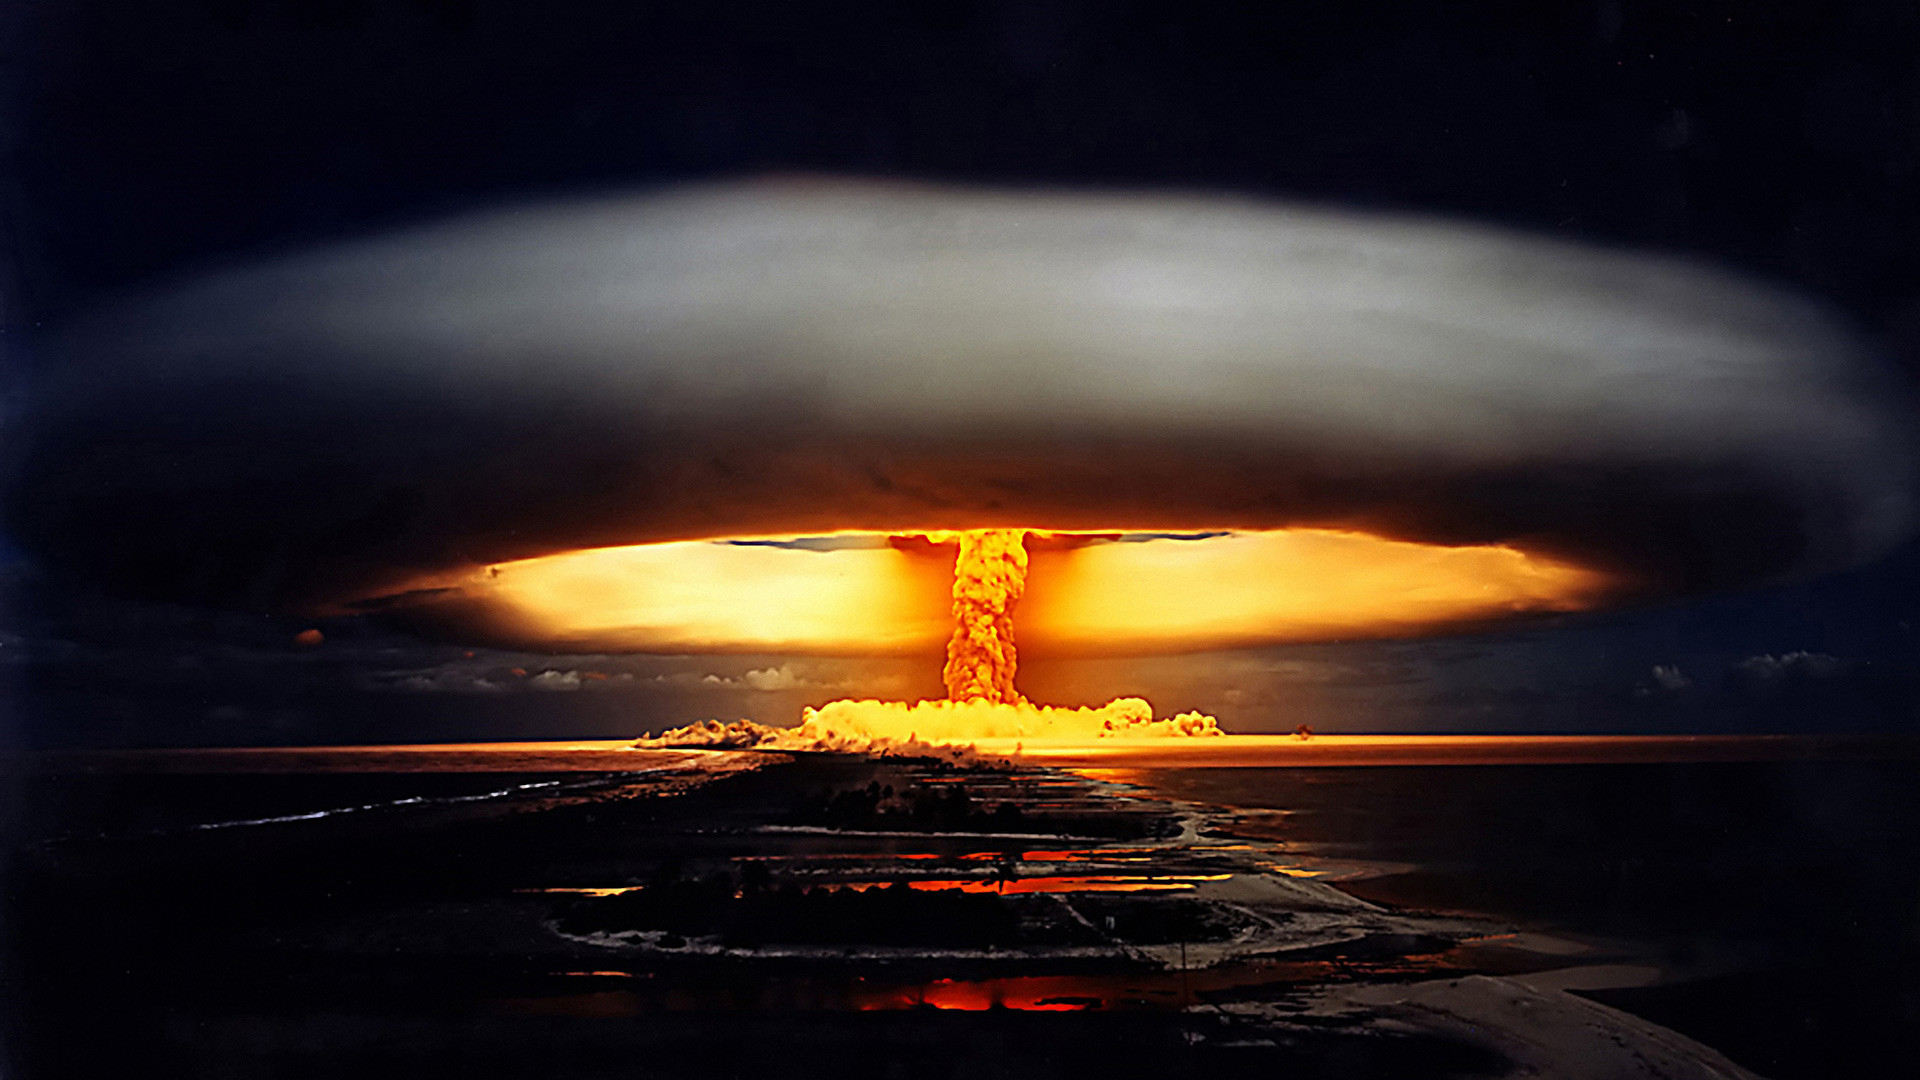 A nuclear mushroom is always a breathtaking yet deadly view.